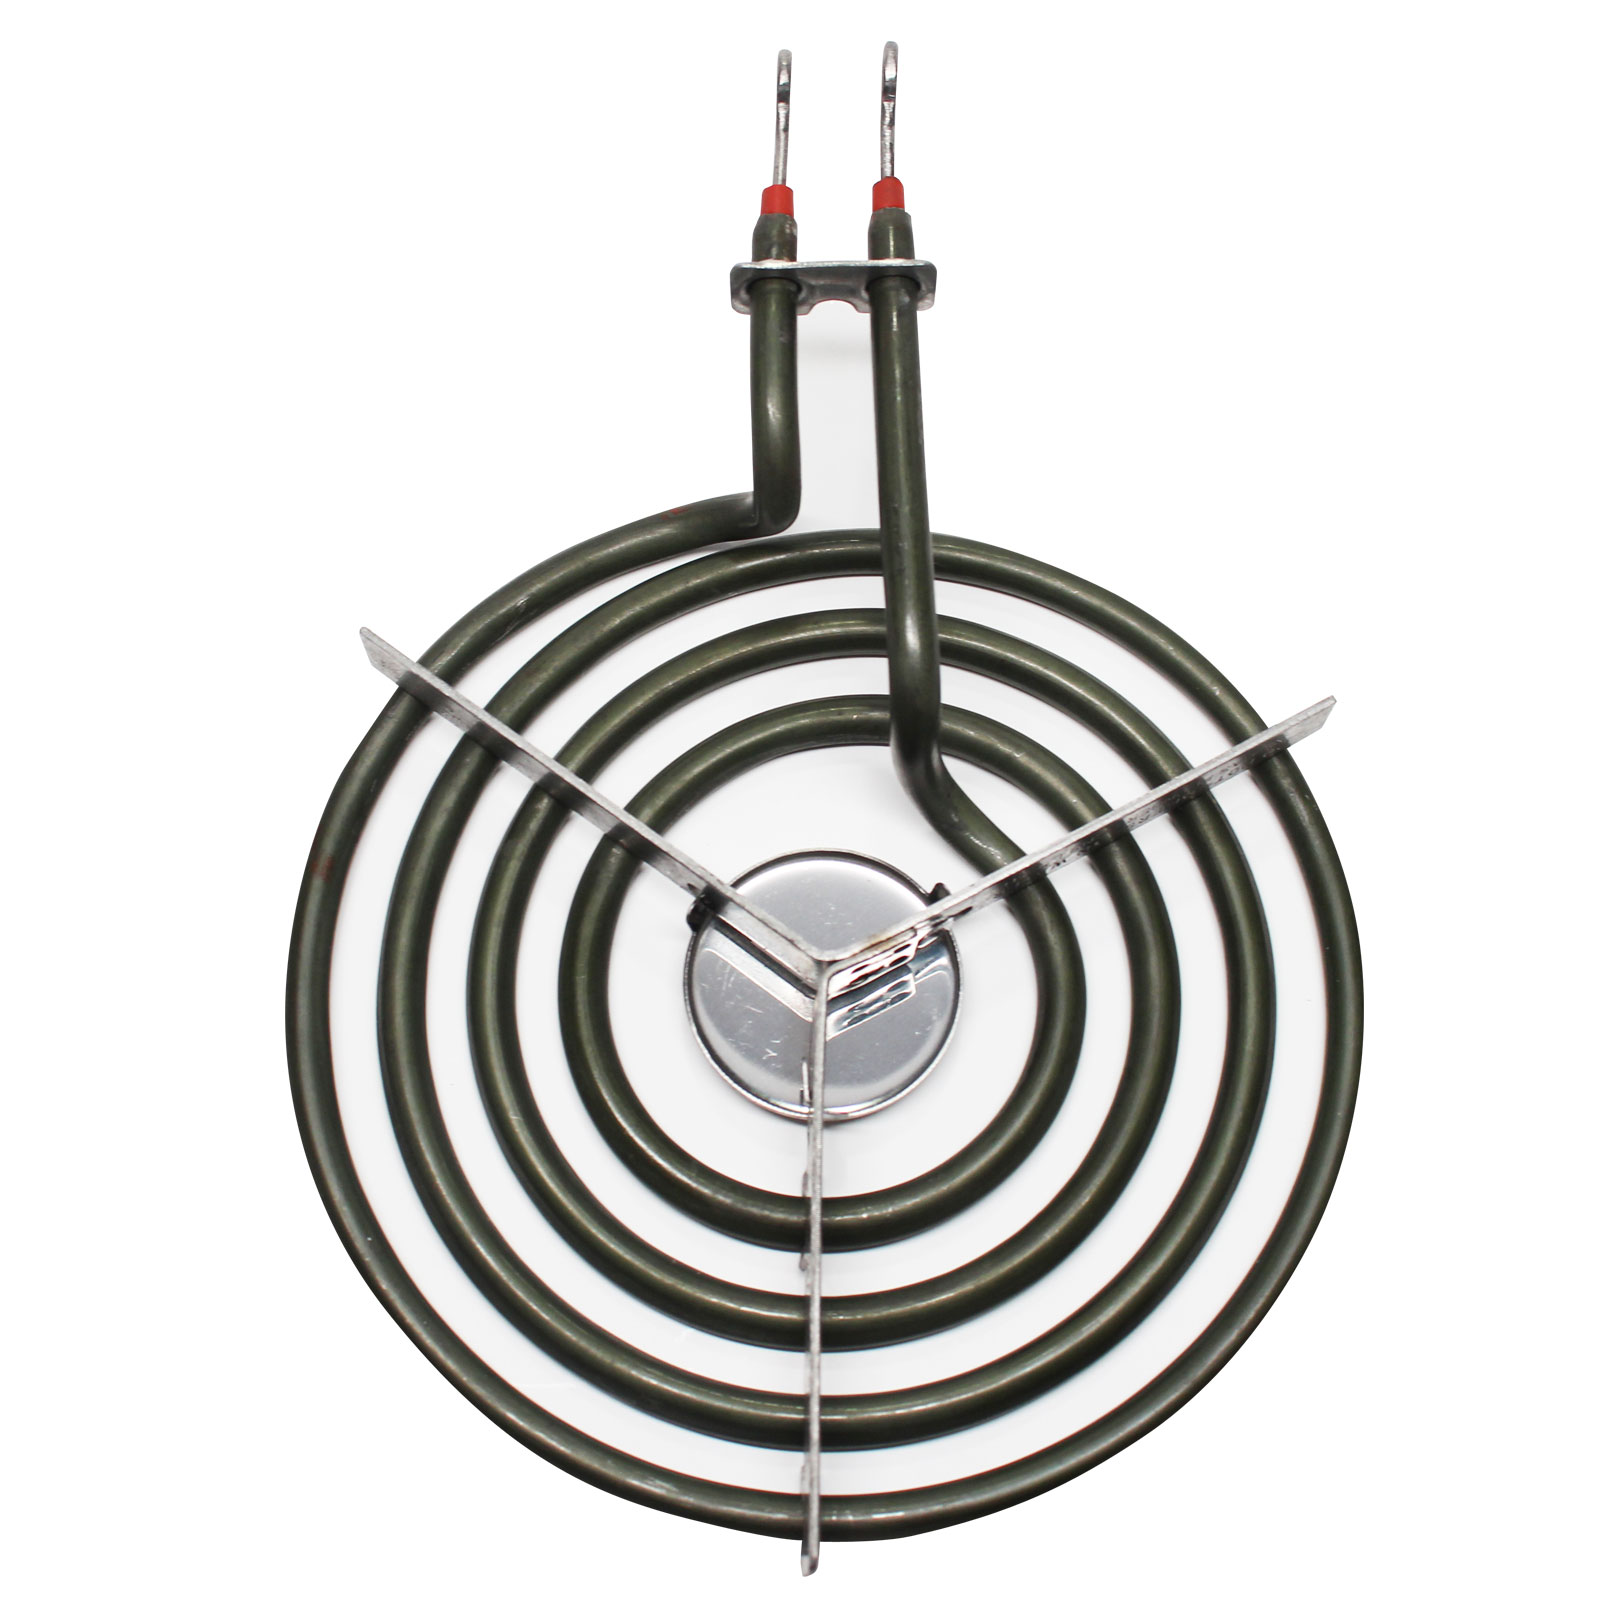 2-Pack Replacement Norge NEA3G8AC 6 inch 4 Turns Surface Burner Element - Compatible Norge 660532 Heating Element for Range, Stove & Cooktop - image 1 de 4